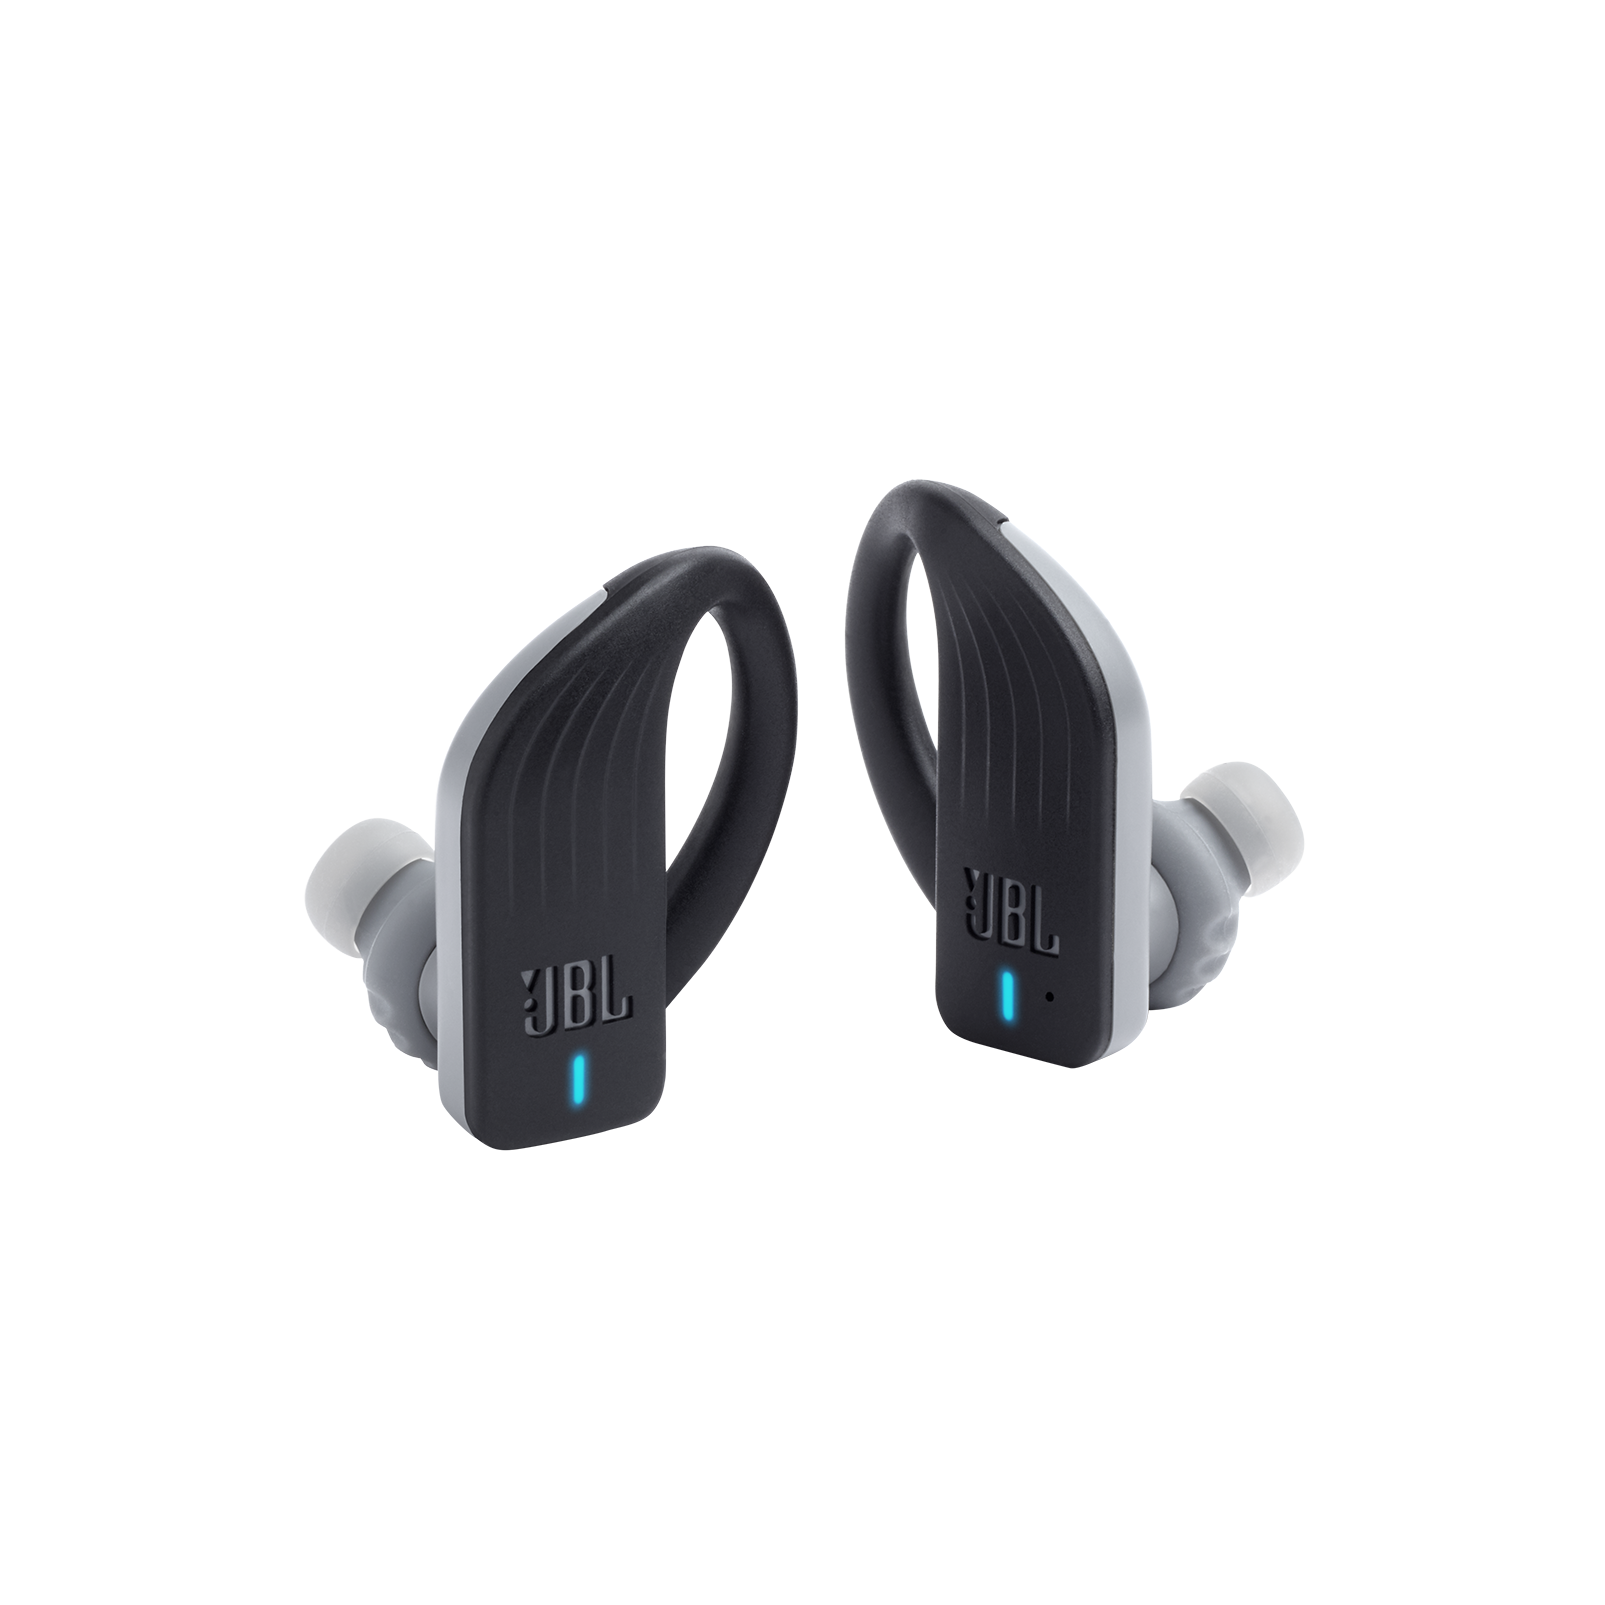 JBL Endurance PEAK - Black - Waterproof True Wireless In-Ear Sport Headphones - Detailshot 3